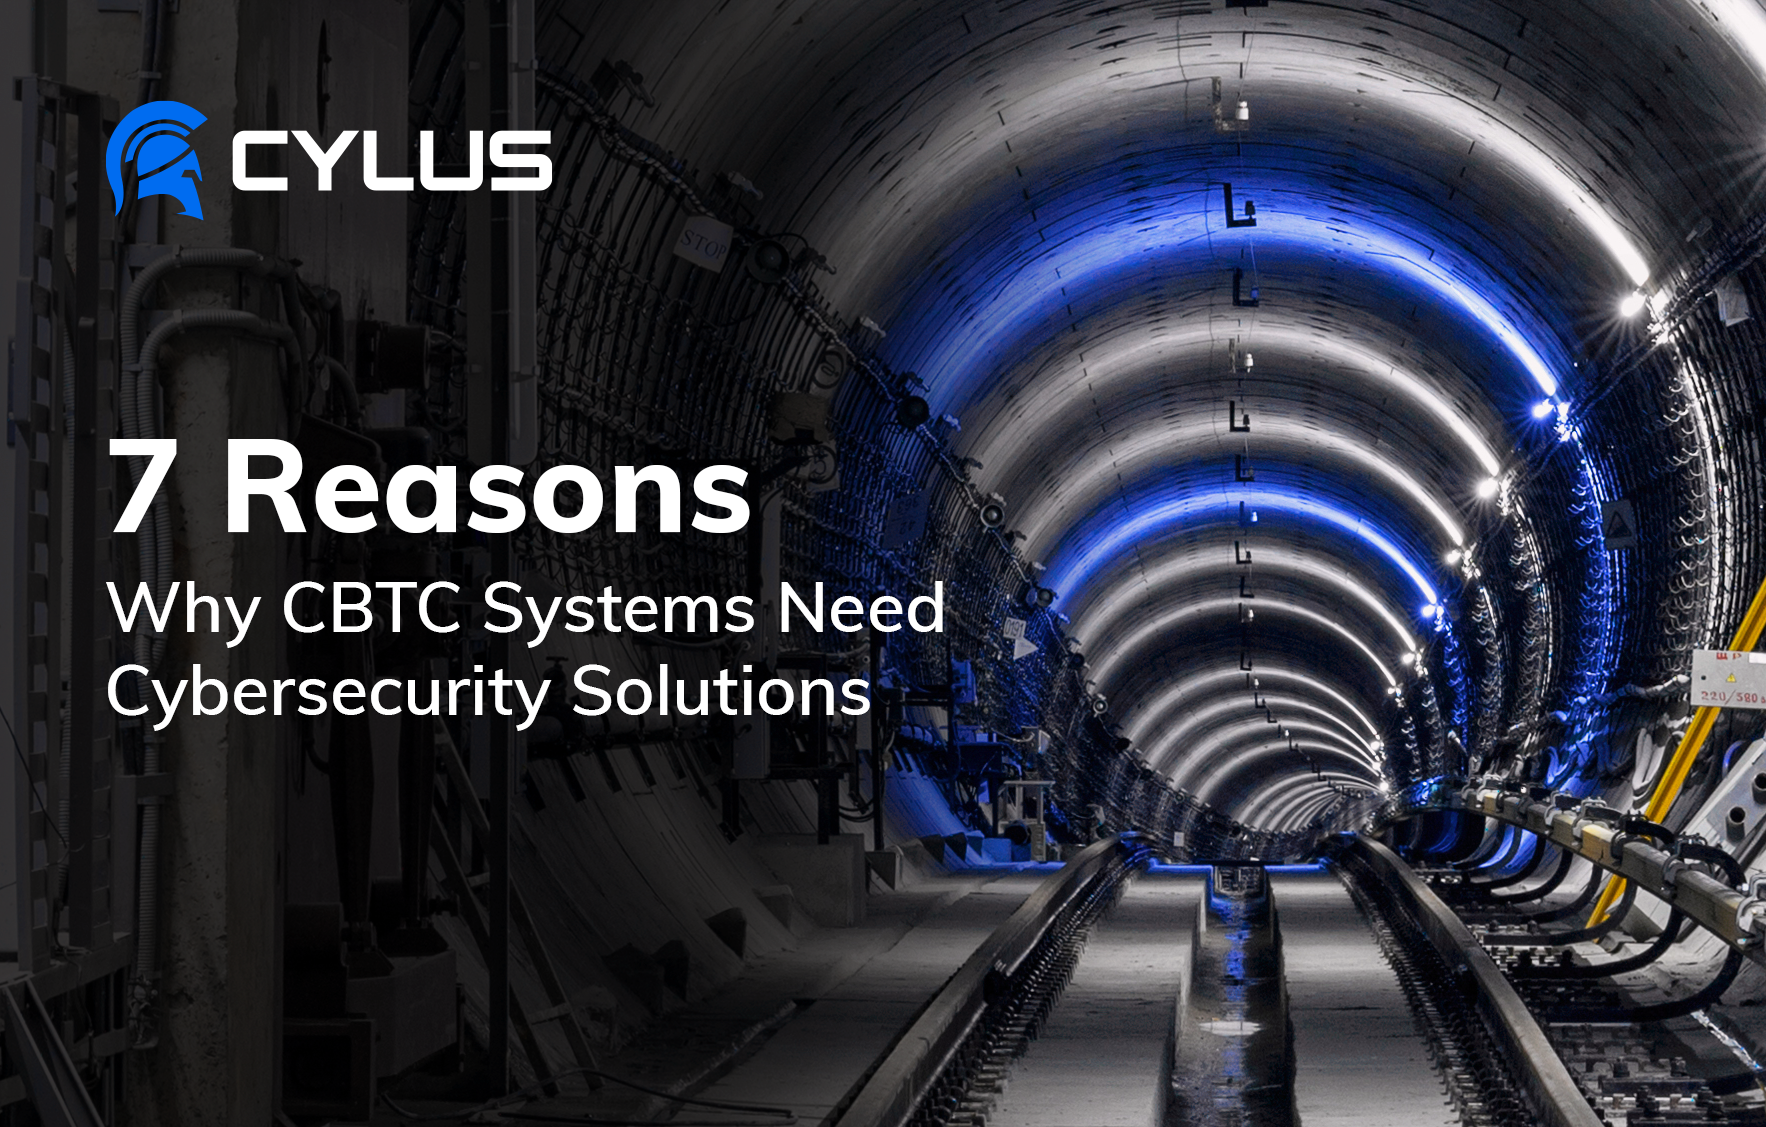 7 Reasons Why CBTC Systems Need Cybersecurity Solutions